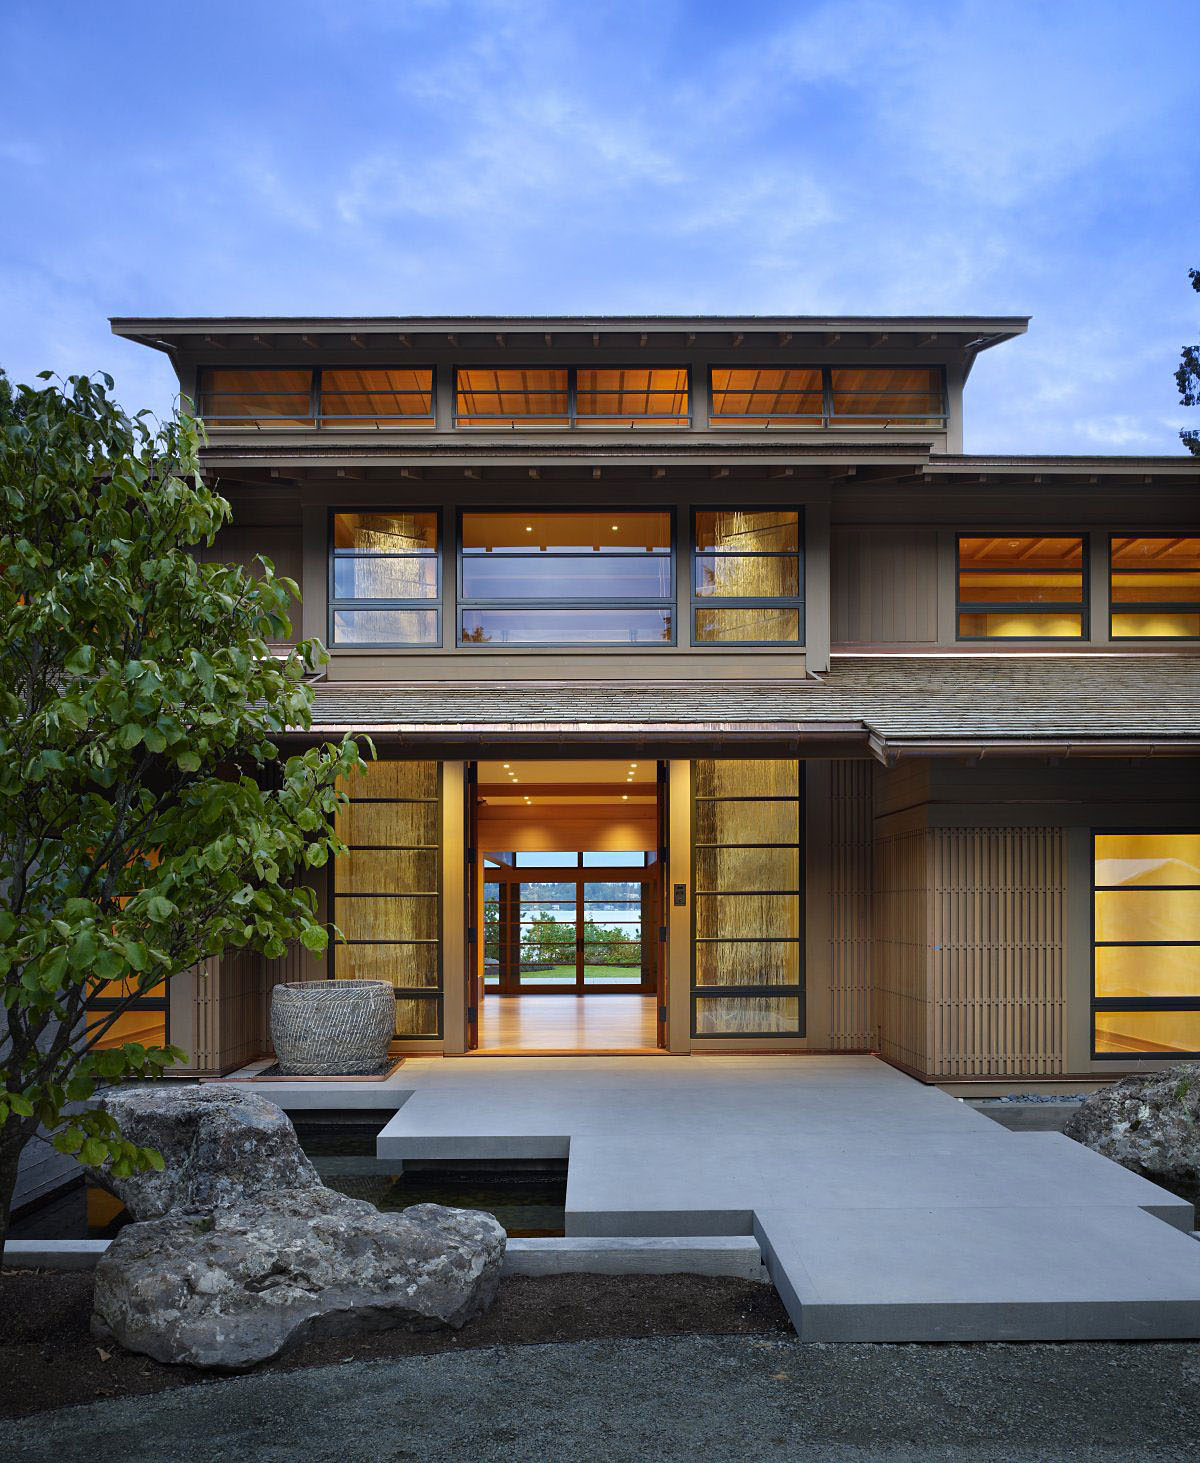 Contemporary House Interior Designs: Contemporary House In Seattle With Japanese Influence